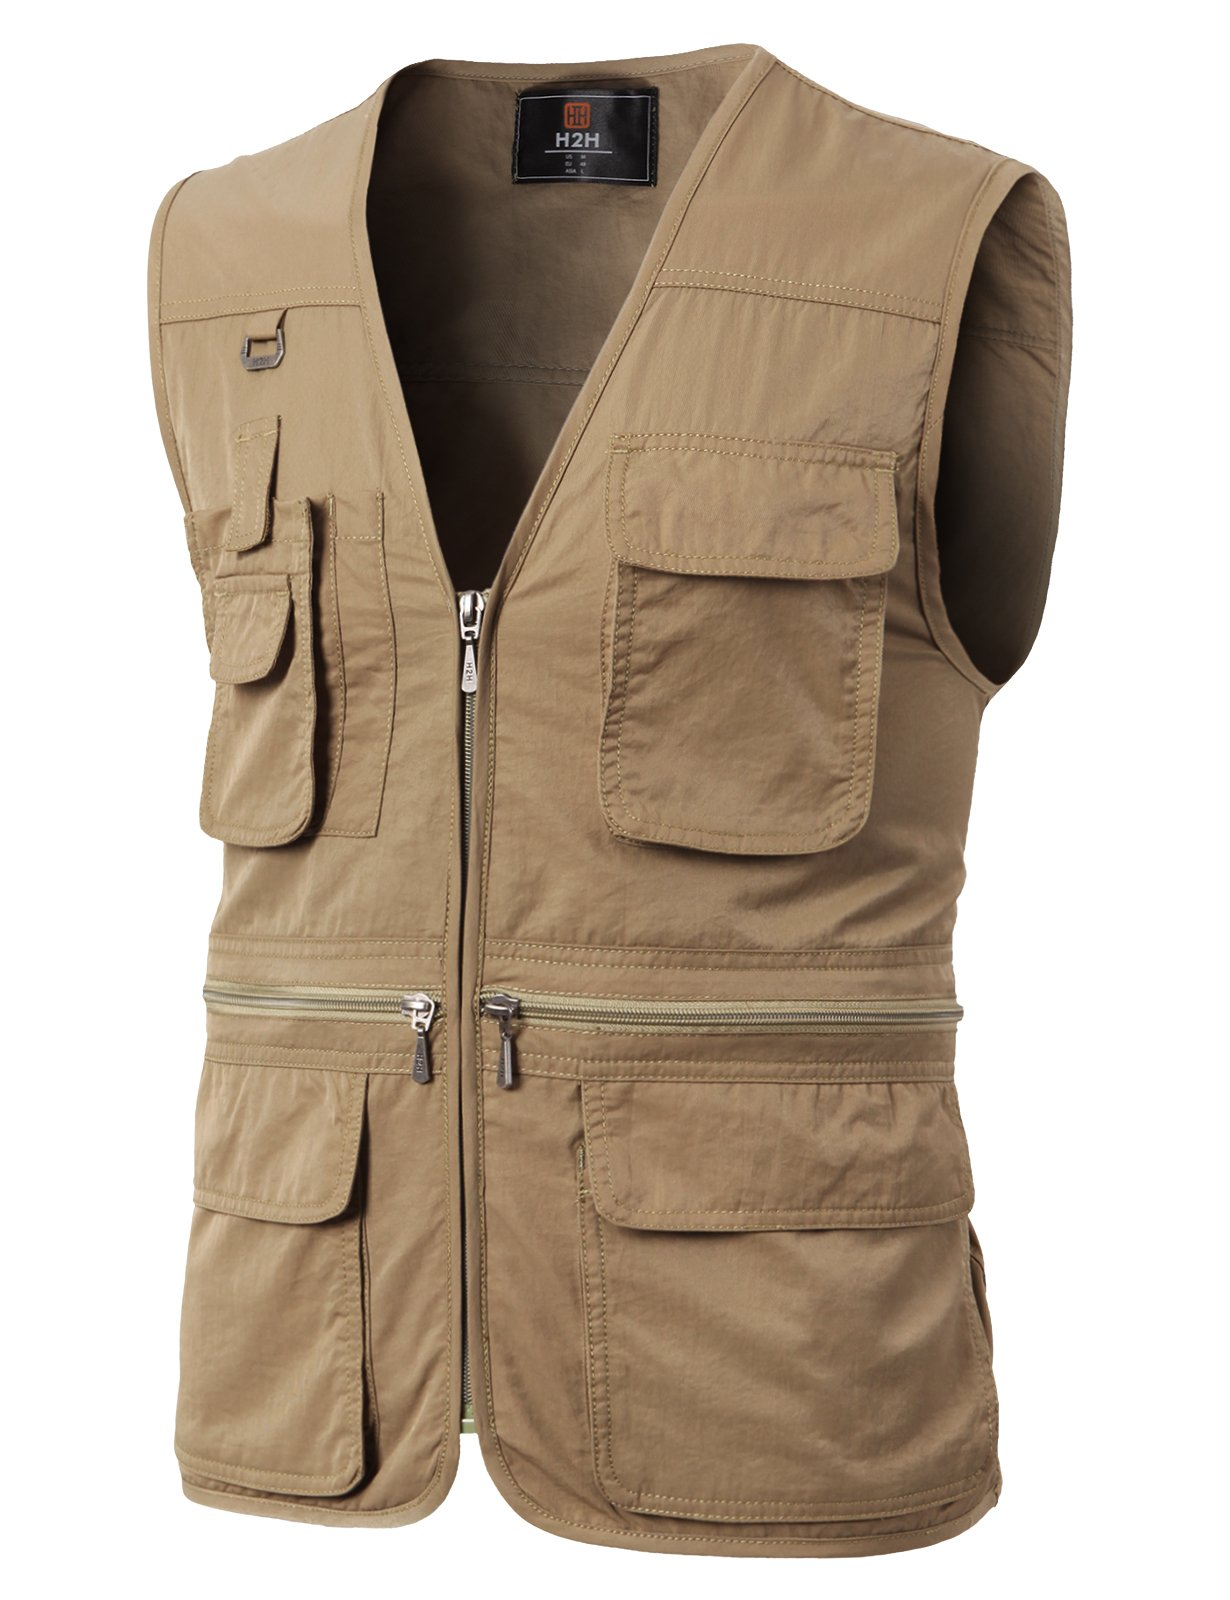 H2H Men¡¯s Featherweight Vest - 14 Pockets - Travel Clothing Brown US M/Asia L (KMOV0113)